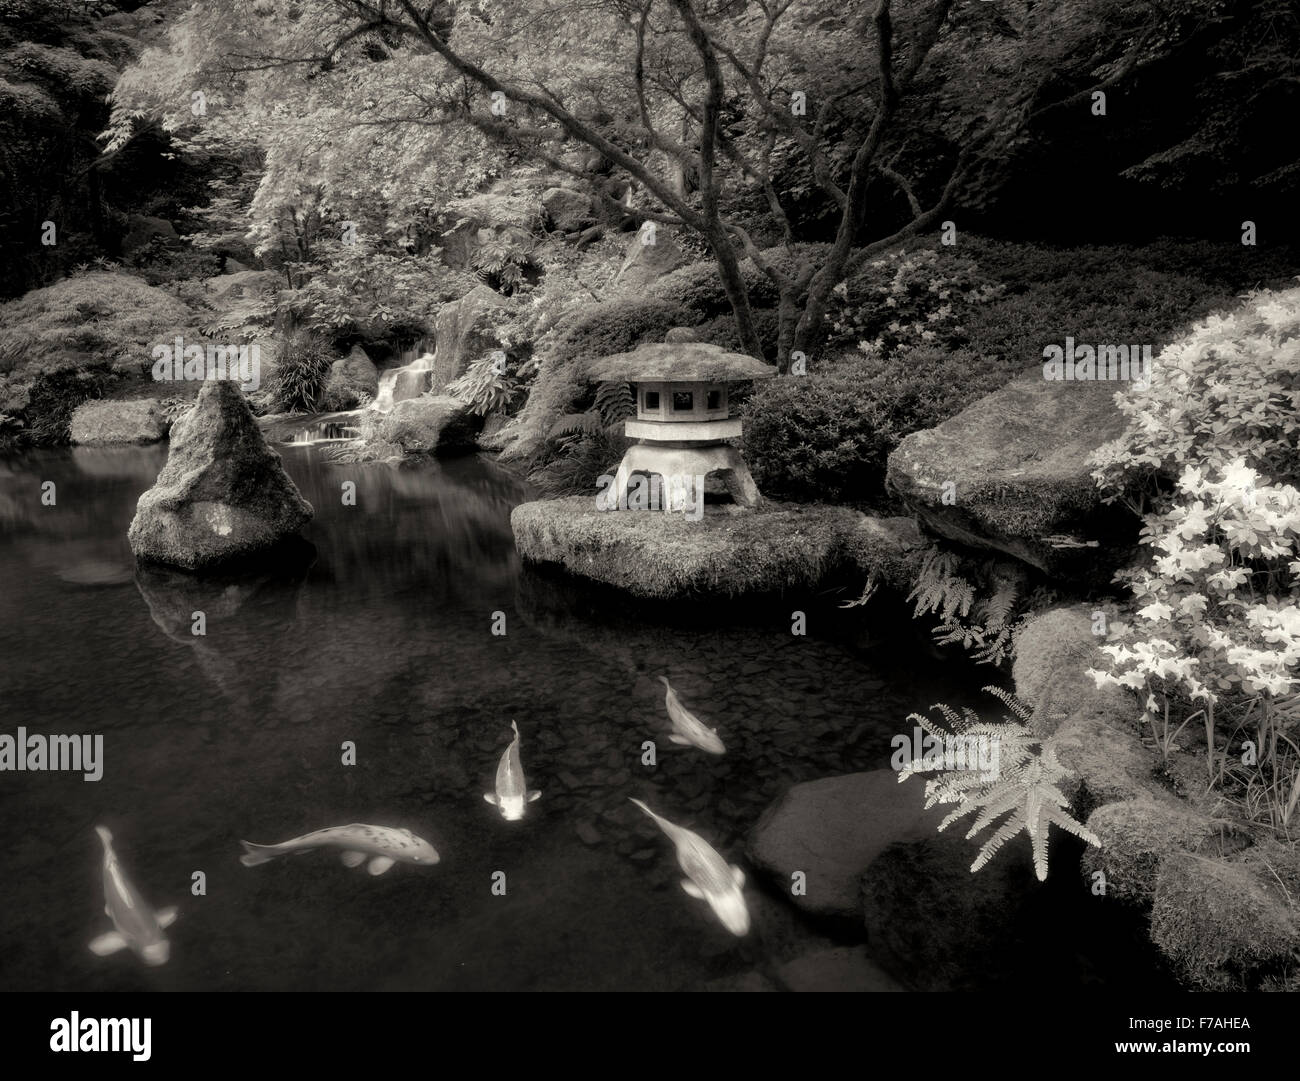 Koi in pond with Japanese lantern and waterfalls. Japanese Gardens. Portland, Oregon - Stock Image